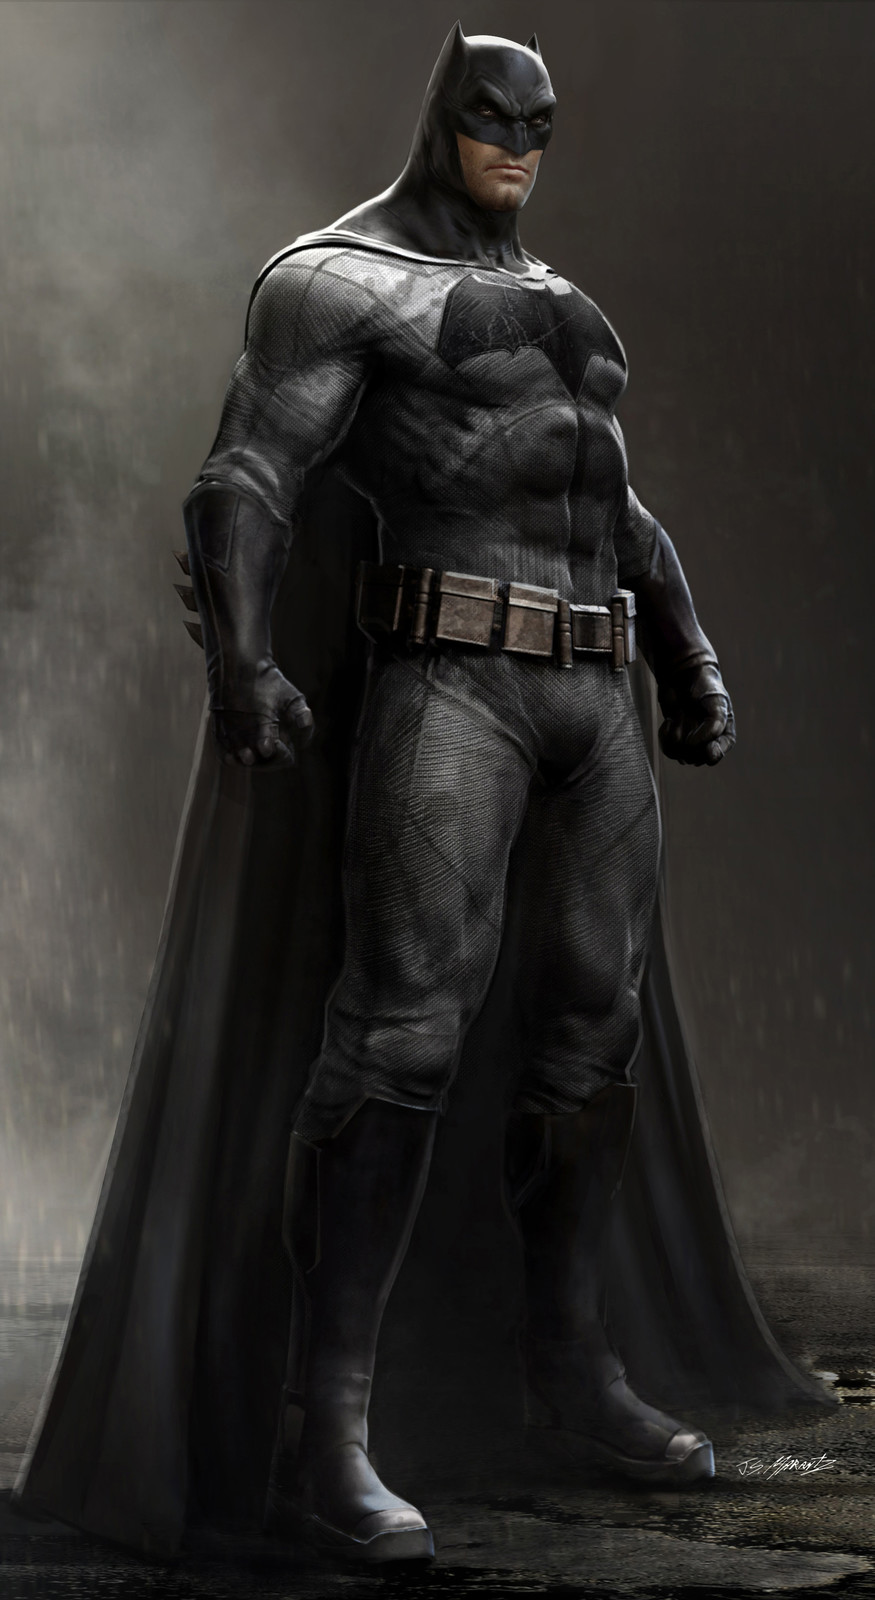 Batman vs. Superman: Batman Concept Art